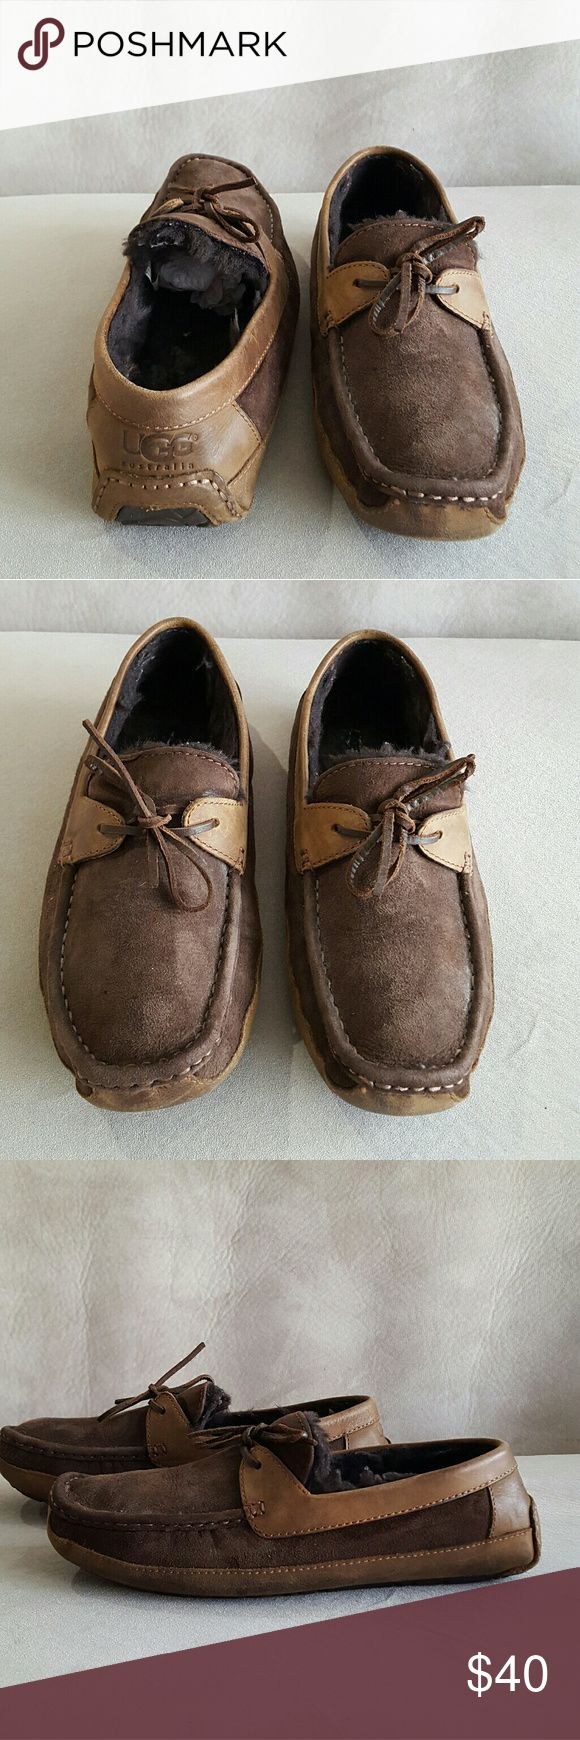 mens ugg scuff slippers size 11